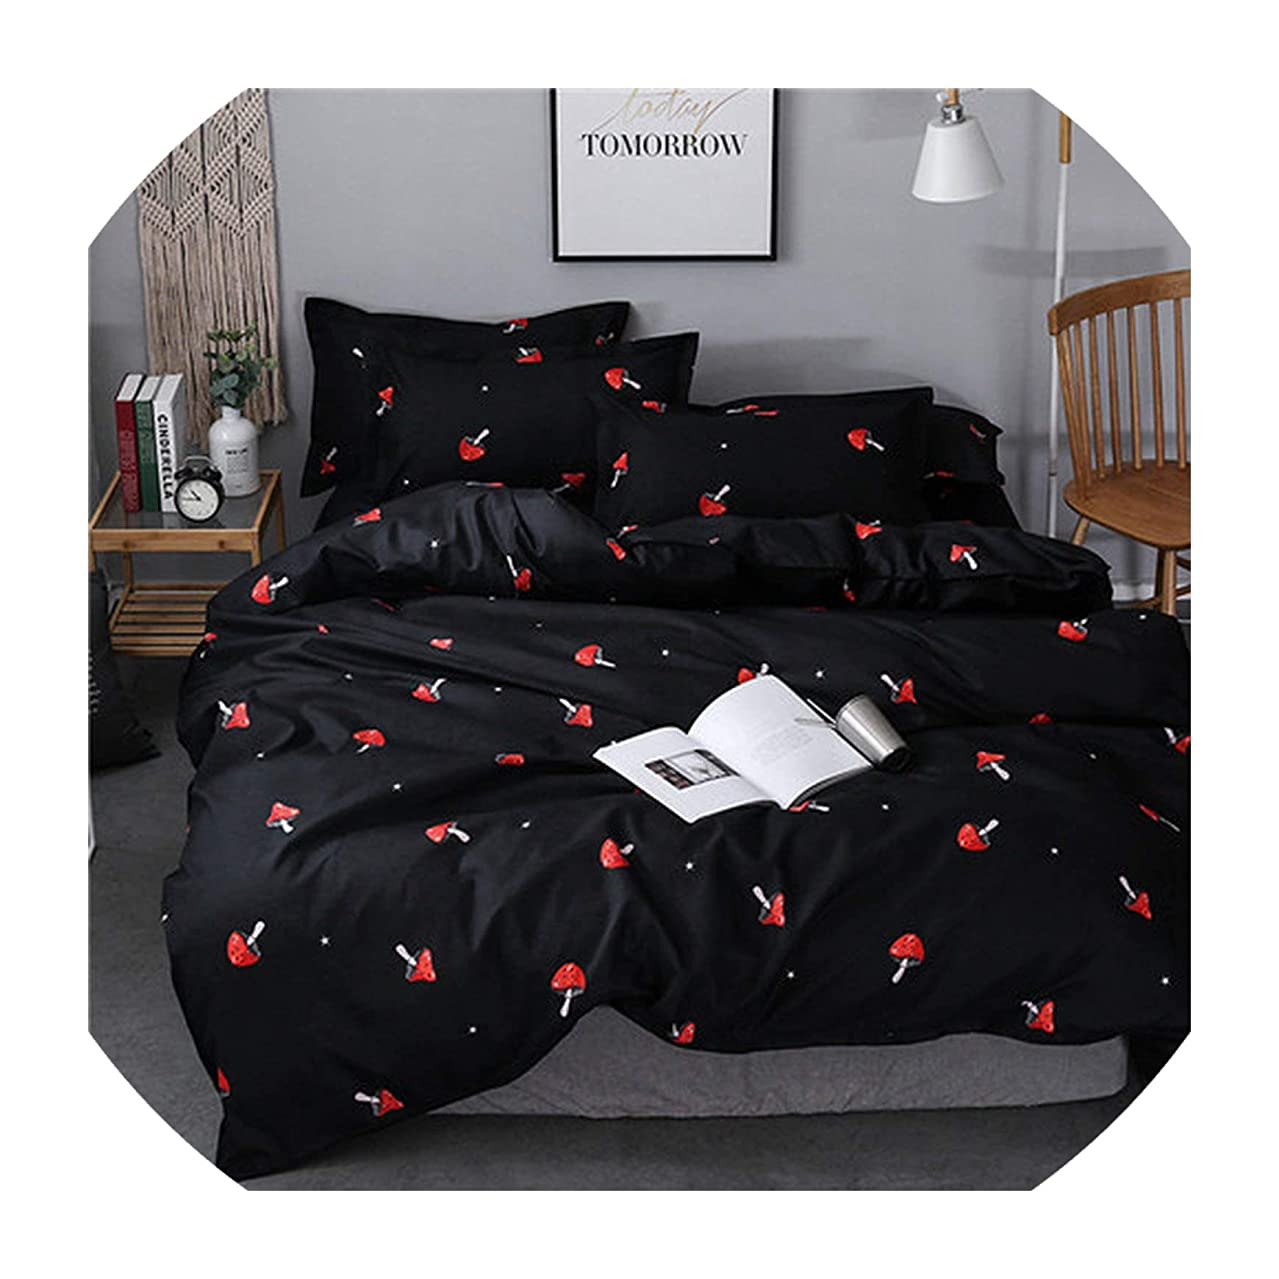 Jifnhtrs Pastoral Style Bedding Set Winter Grey Blue Bed linens 3 or 4pcs/Set Duvet Cover Set Panda Bed Set Kids Bedclothes Queen Bedding,Black red,Small Twin 3pcs,Flat Sheet